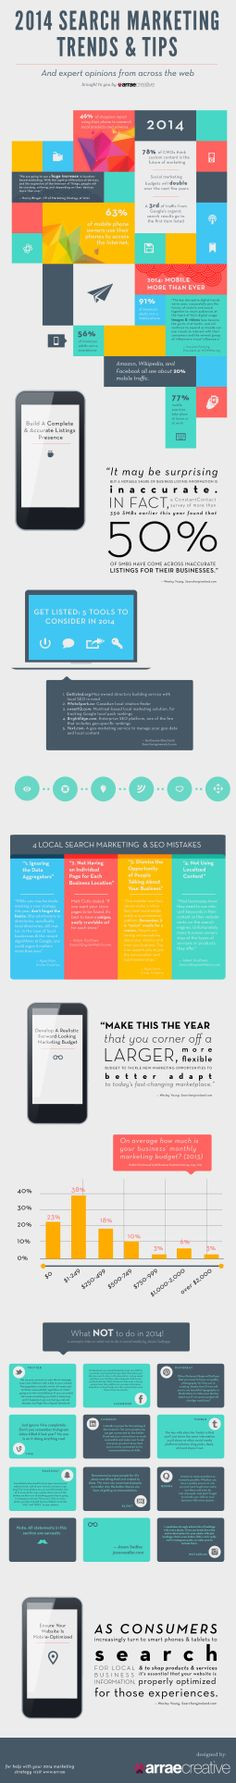 Search Marketing Trends for 2014 Infographic